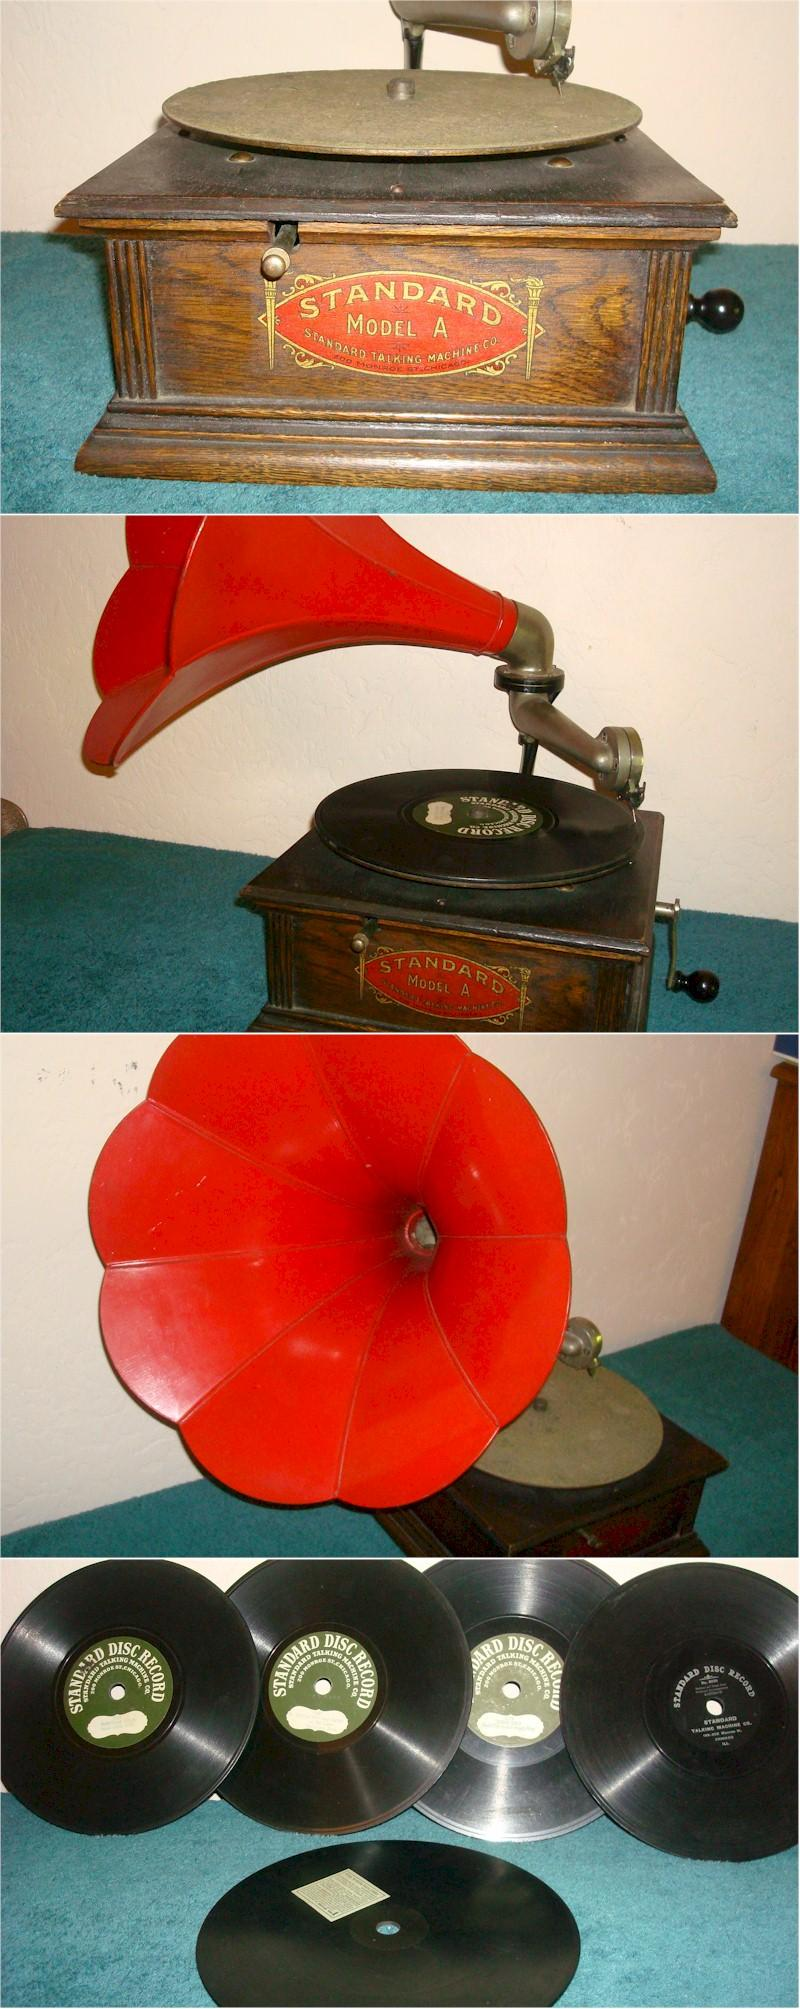 "Standard Model ""A"" Phonograph w/25 Records"